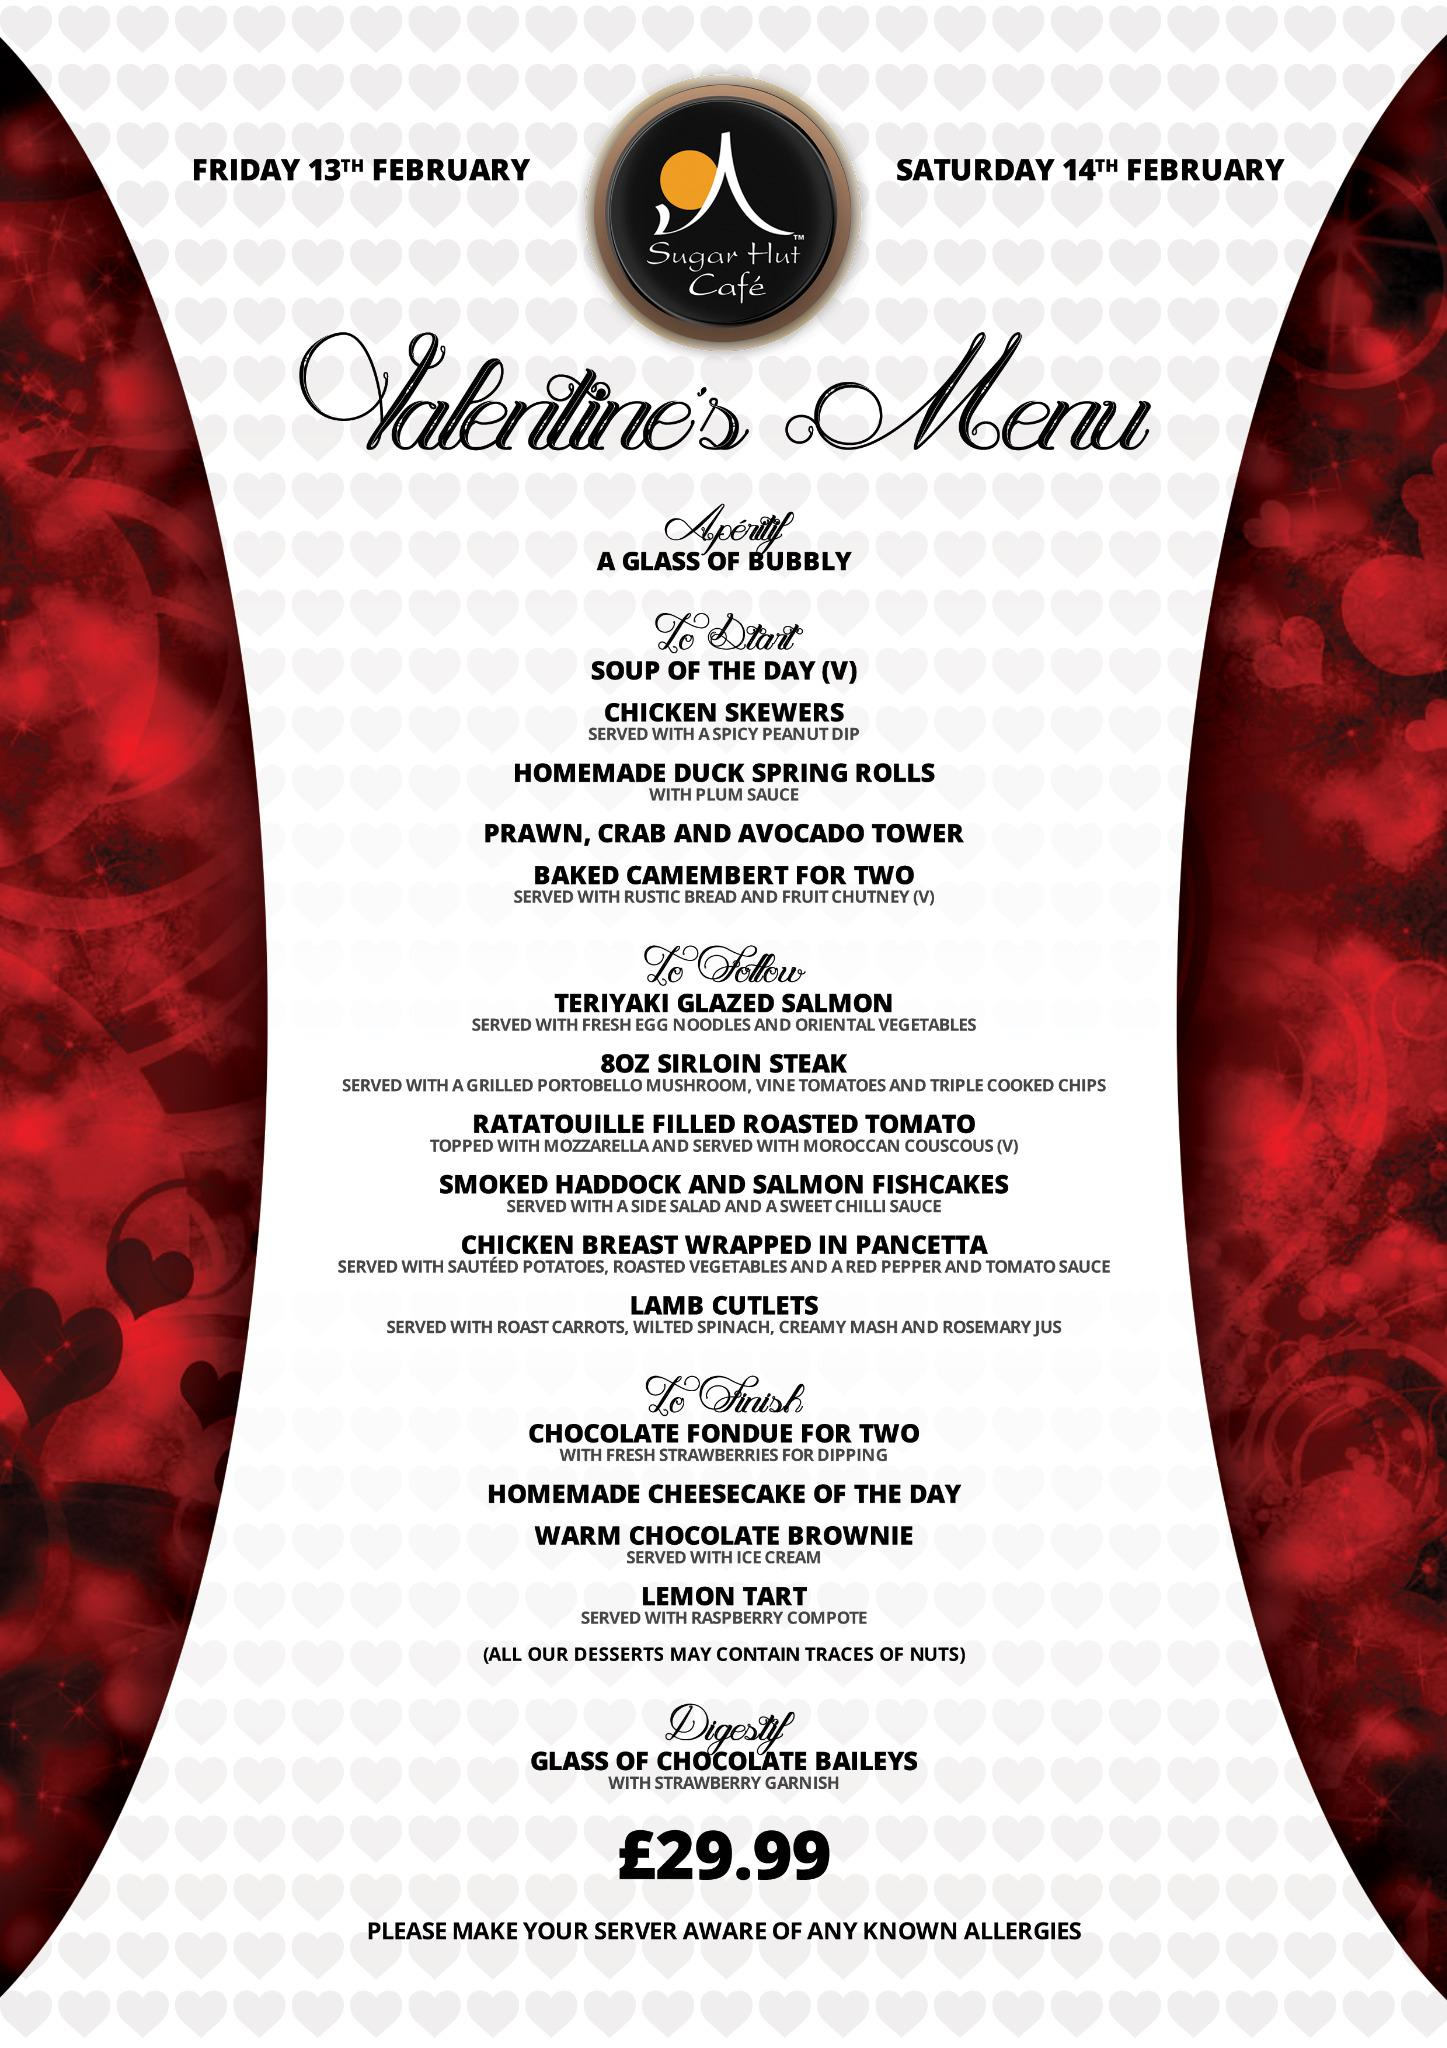 RT @coccoanais: Check out what @SugarHutCafe have on offer if you want to be spoiled this Valentine's! http://t.co/fGNsnLGvxG bit of @Calum…